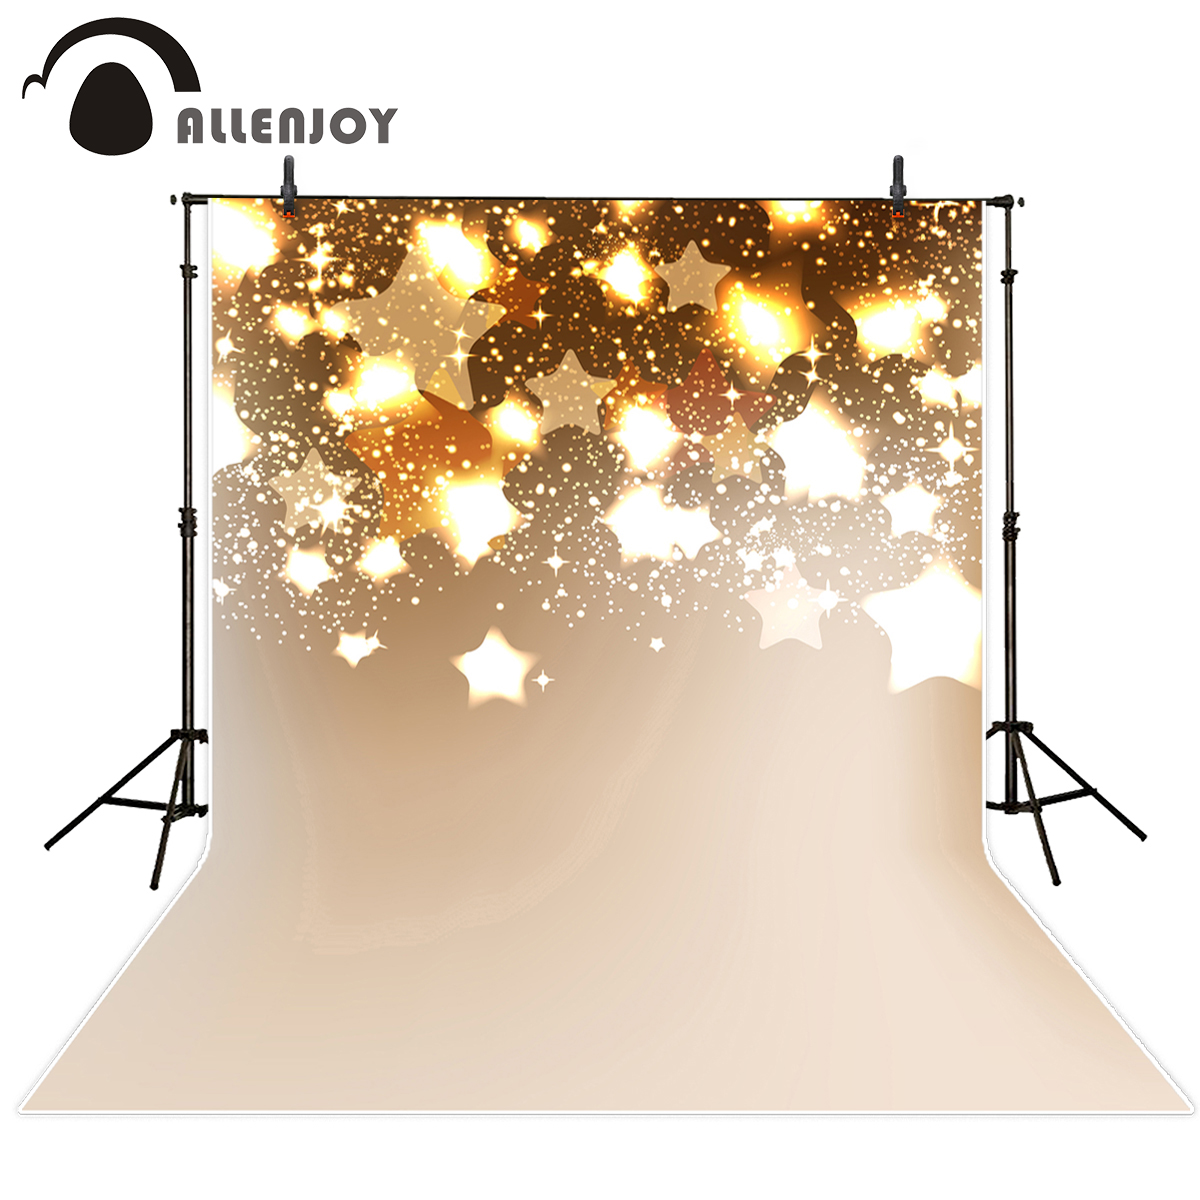 Allenjoy photography backdrops shiny golden star beautiful glitter backgrounds for photo studio photography background vinyl car rear trunk security shield shade cargo cover for nissan qashqai 2008 2009 2010 2011 2012 2013 black beige